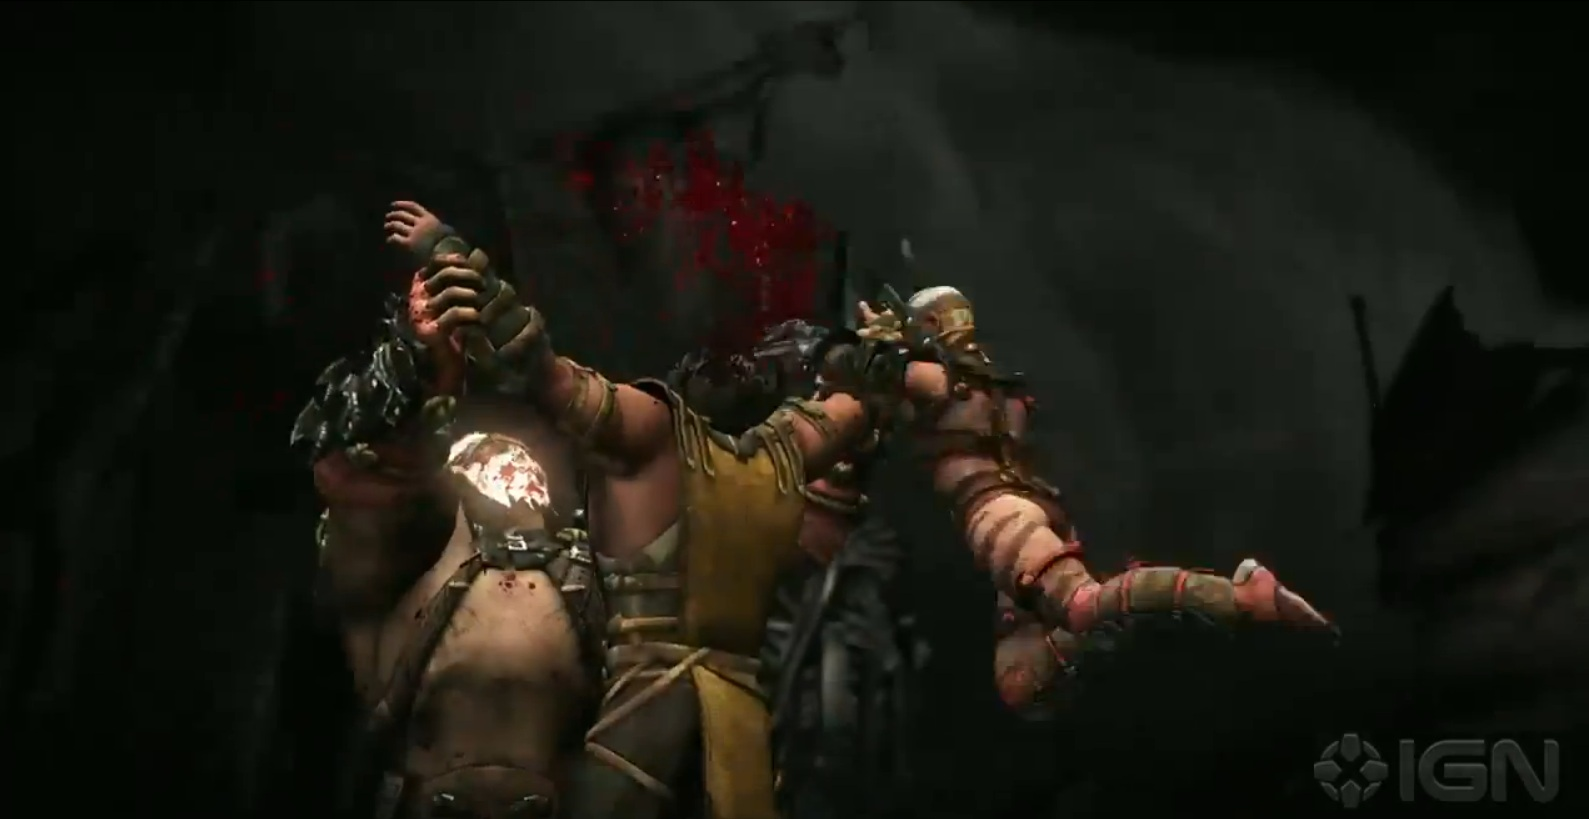 Mortal kombat x fatalities pictures to pin on pinterest